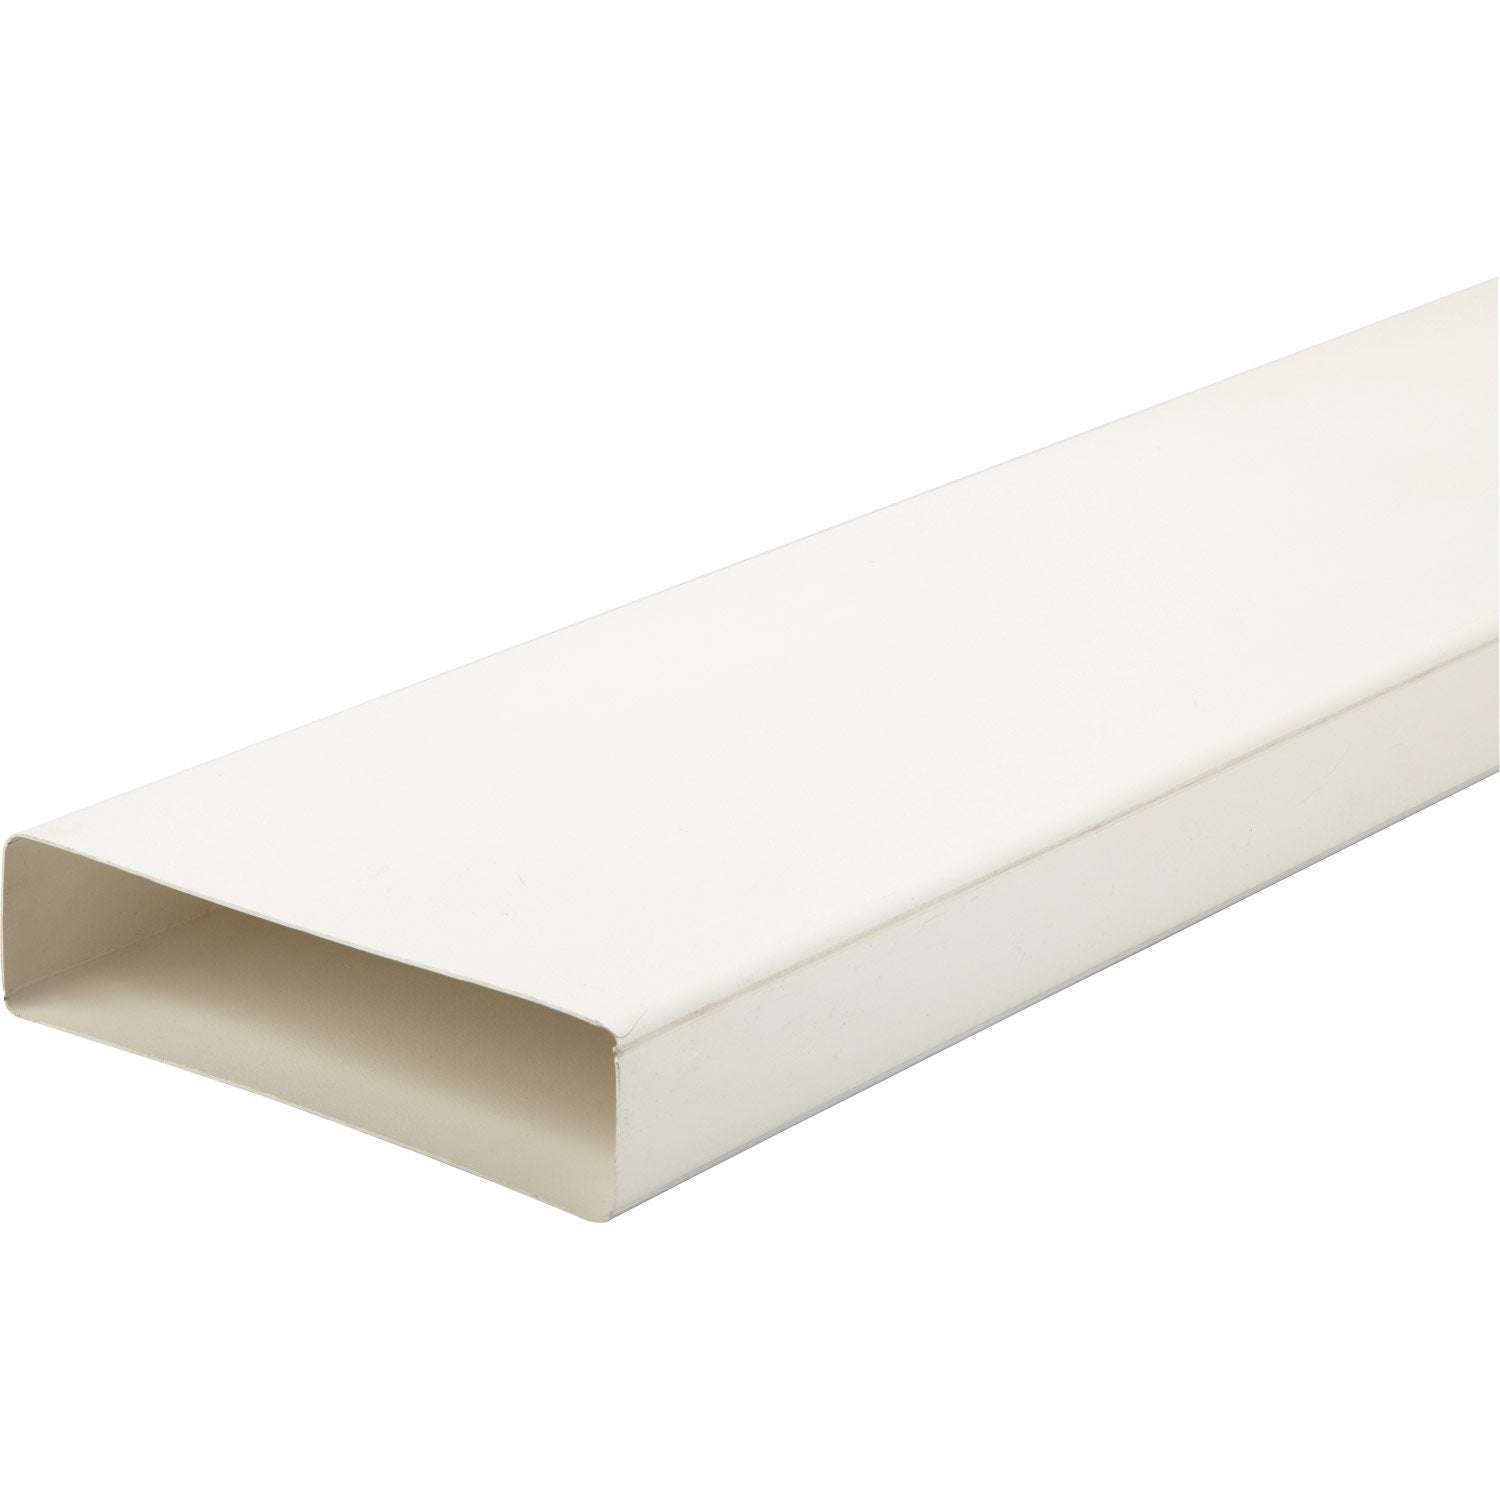 Tube rectangulaire rigide plat pvc s p mm l 1 5 m tpl 300 leroy merlin - Canvas pvc leroy merlin ...